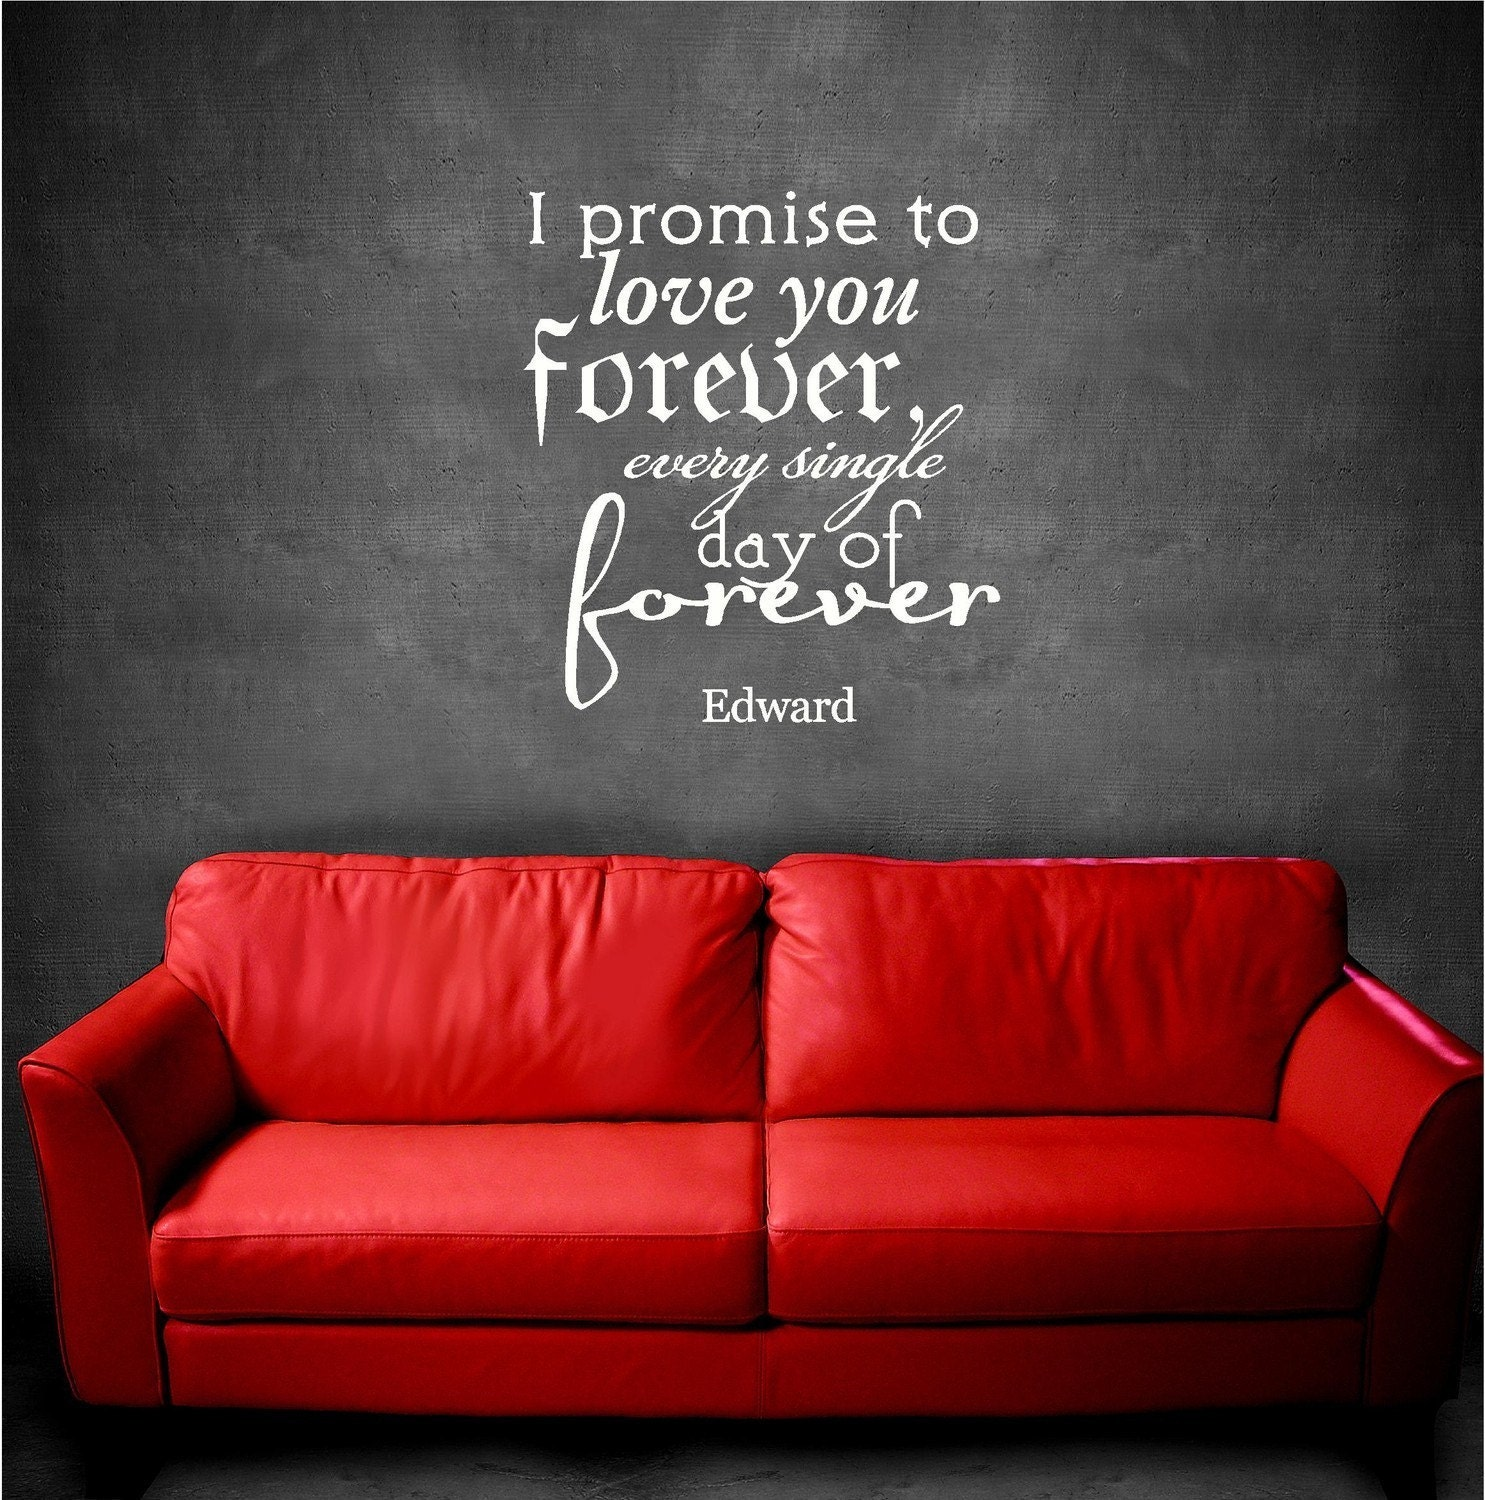 18x20 I promise Love you Forever Edward by willowcreeksigns